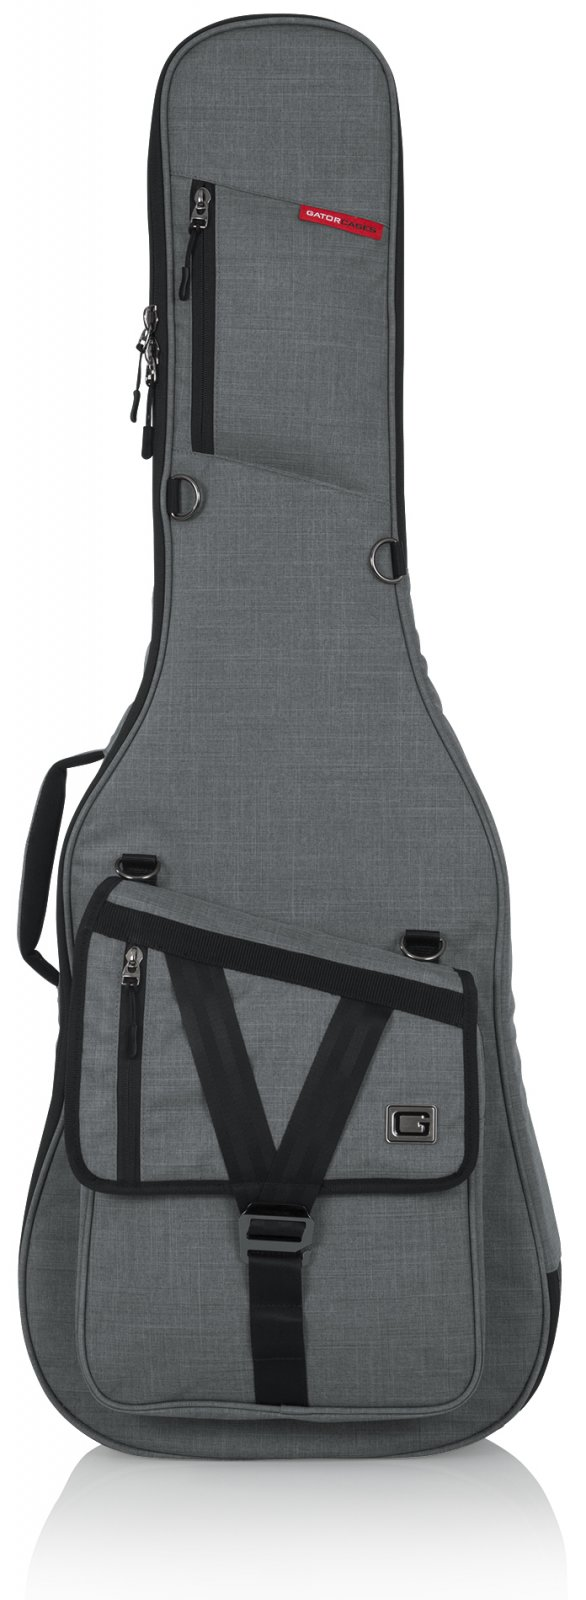 Gator GT-Electric-Grey Gig Bag Heavy Duty Transit Series